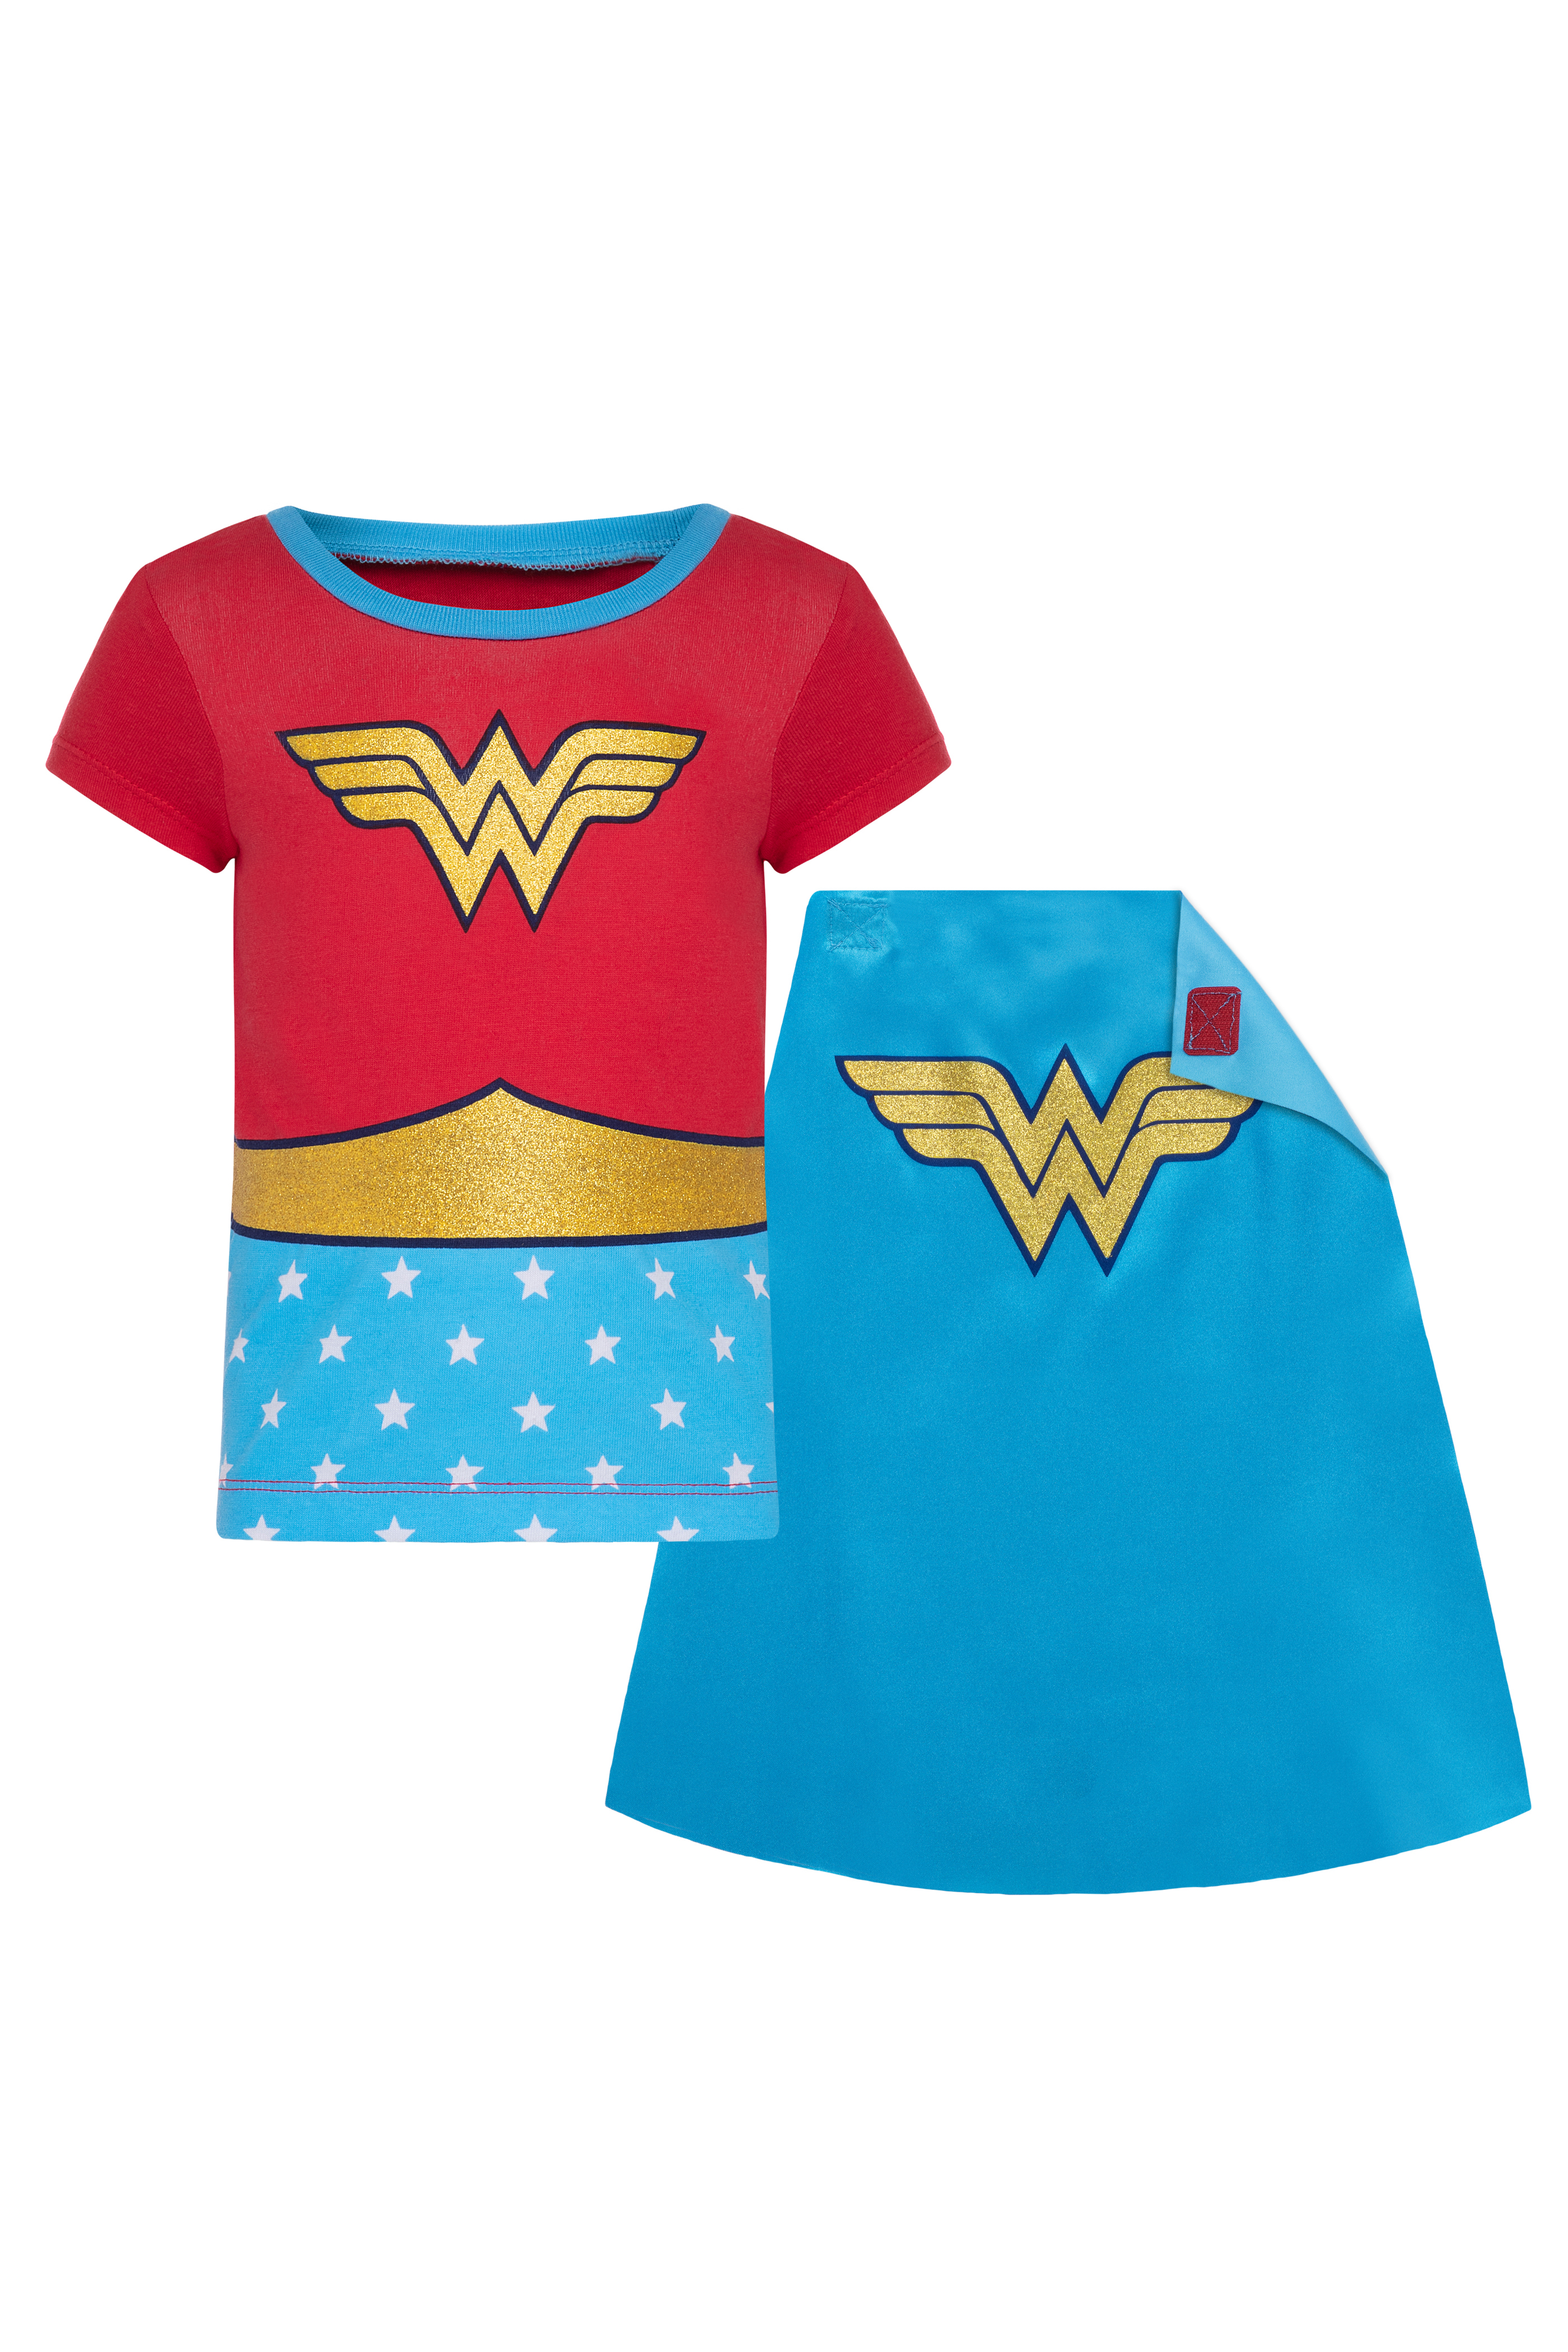 Wonder Woman Girls Americana Top and Scooter 2-Piece Outfit Set